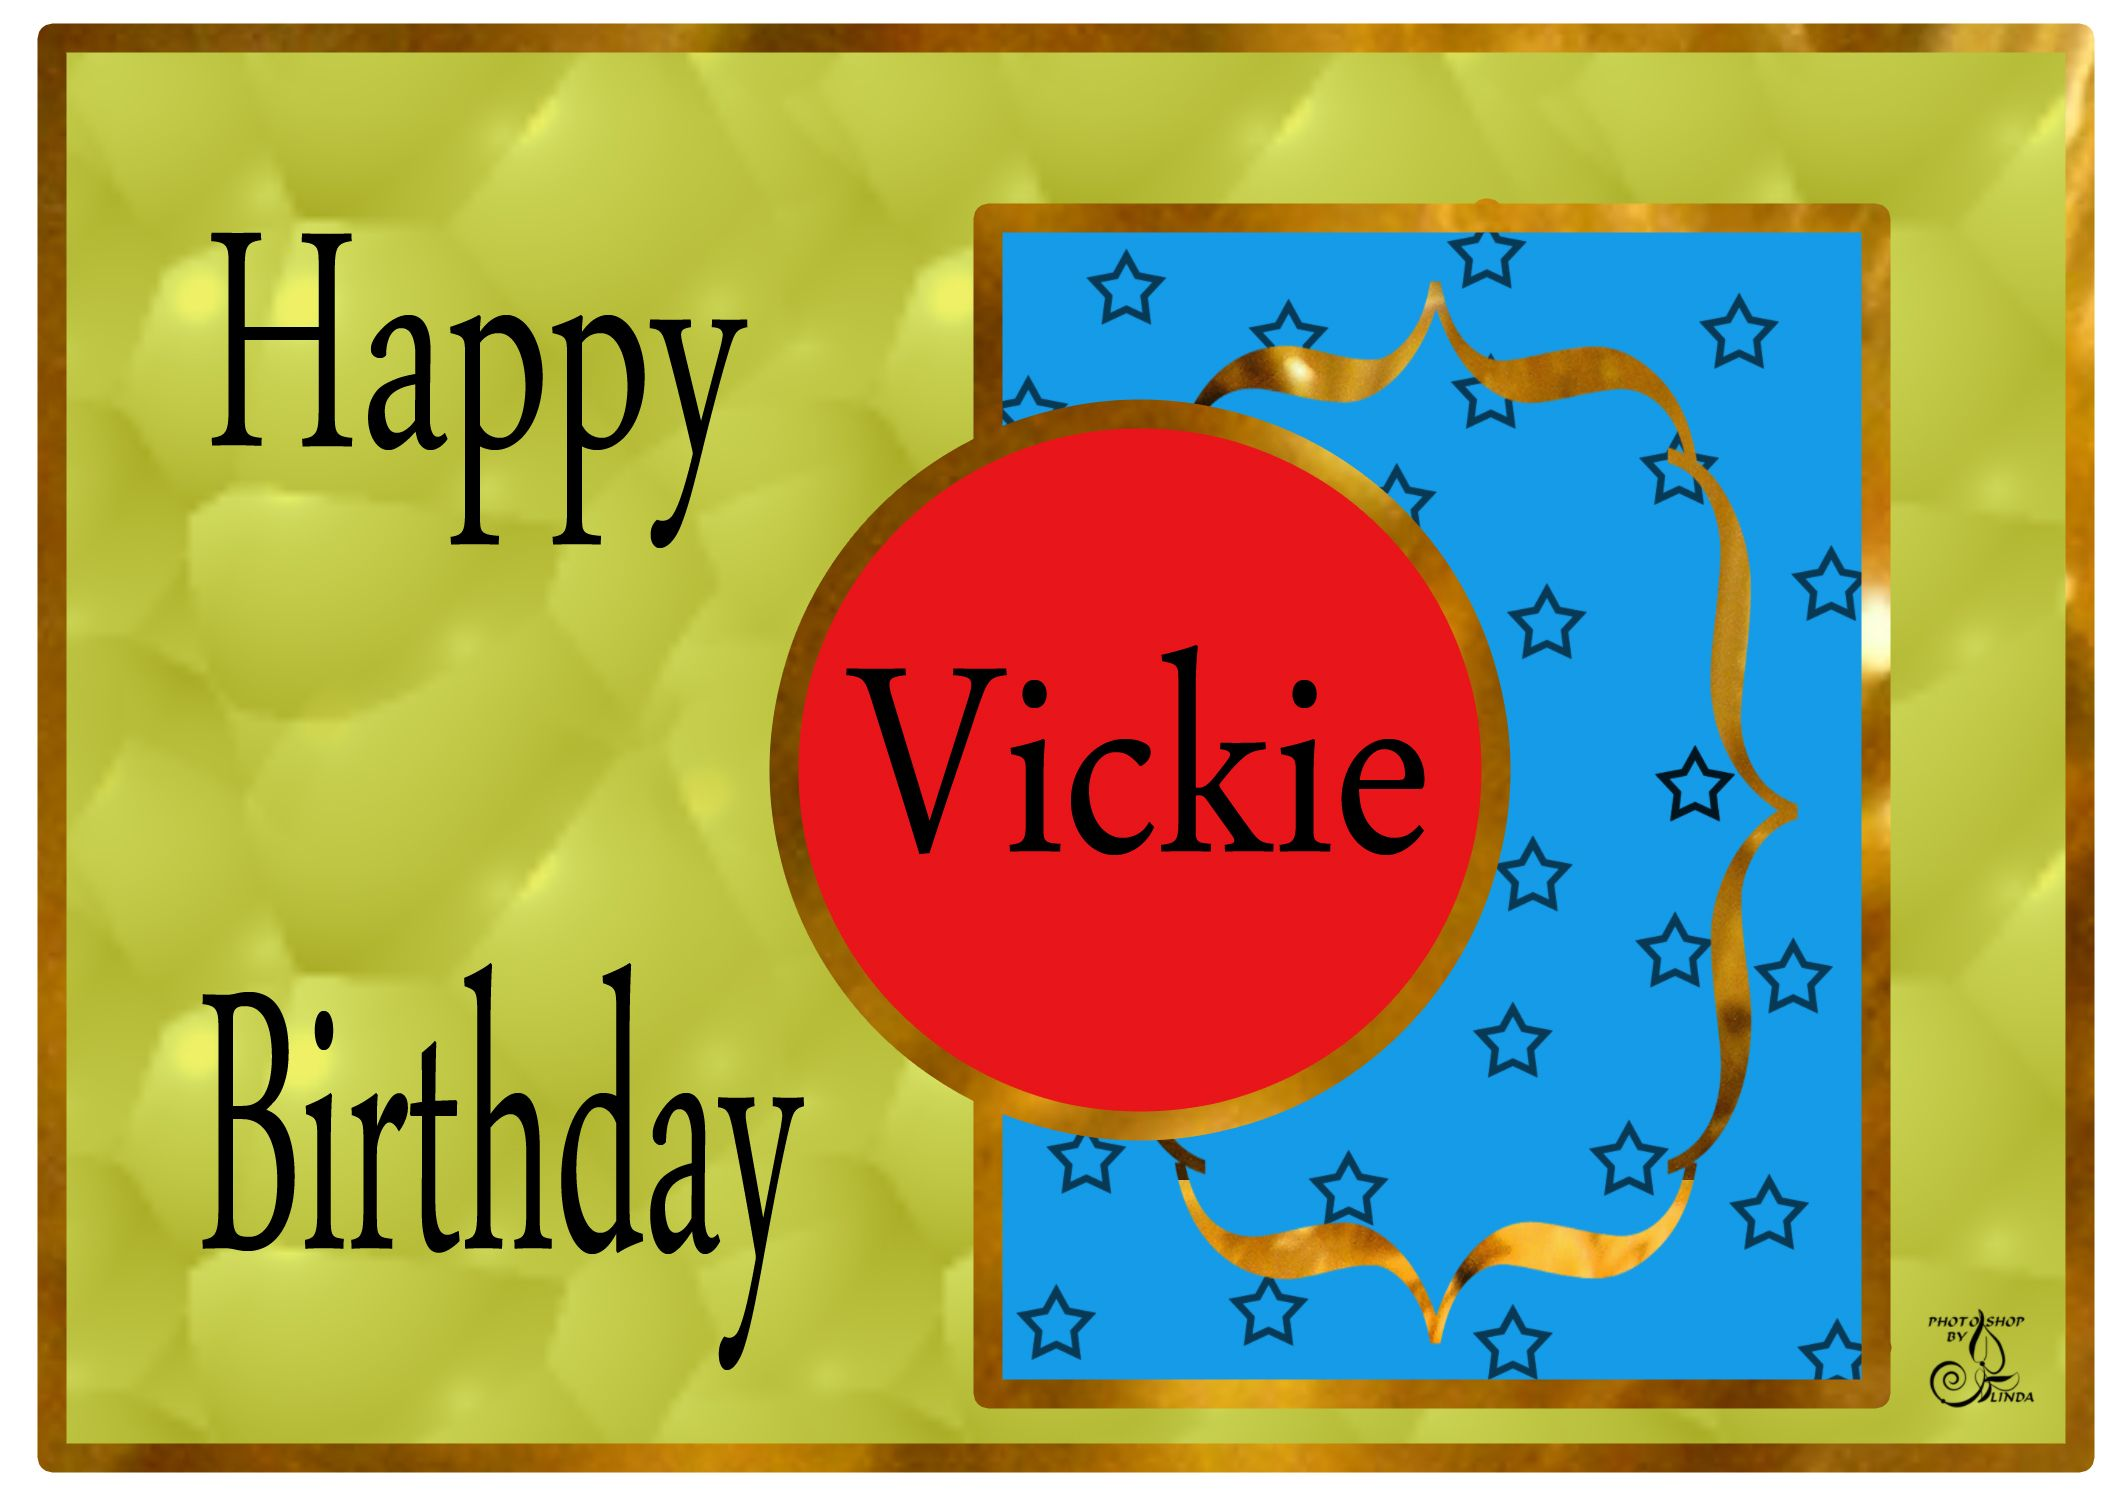 Vickie Happy Birthday Card (With images) Happy birthday